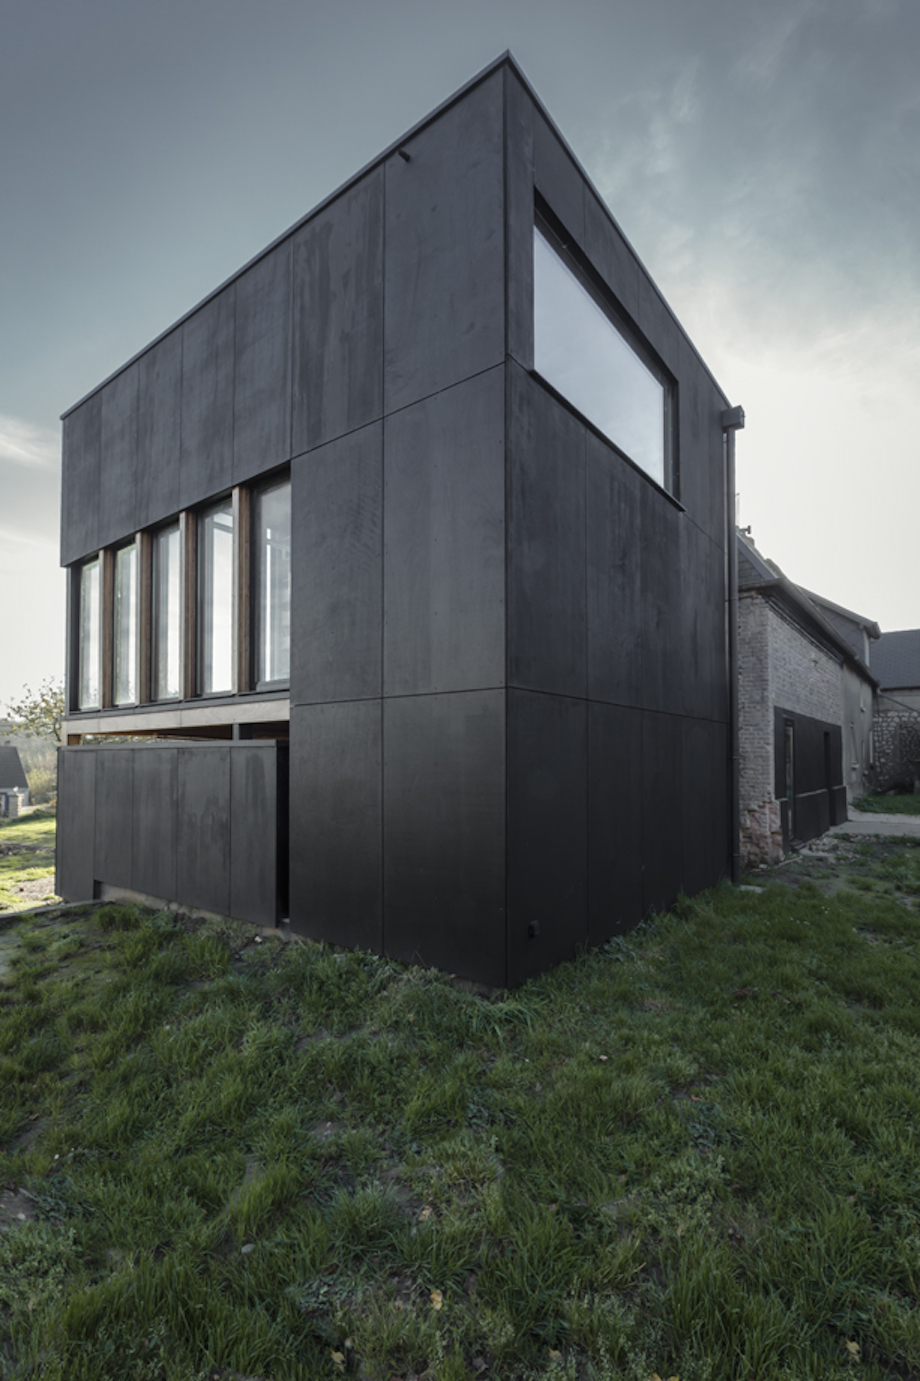 cliffs impasse ziegler antonin architecte 13 Cliffs Impasse by Ziegler Antonin